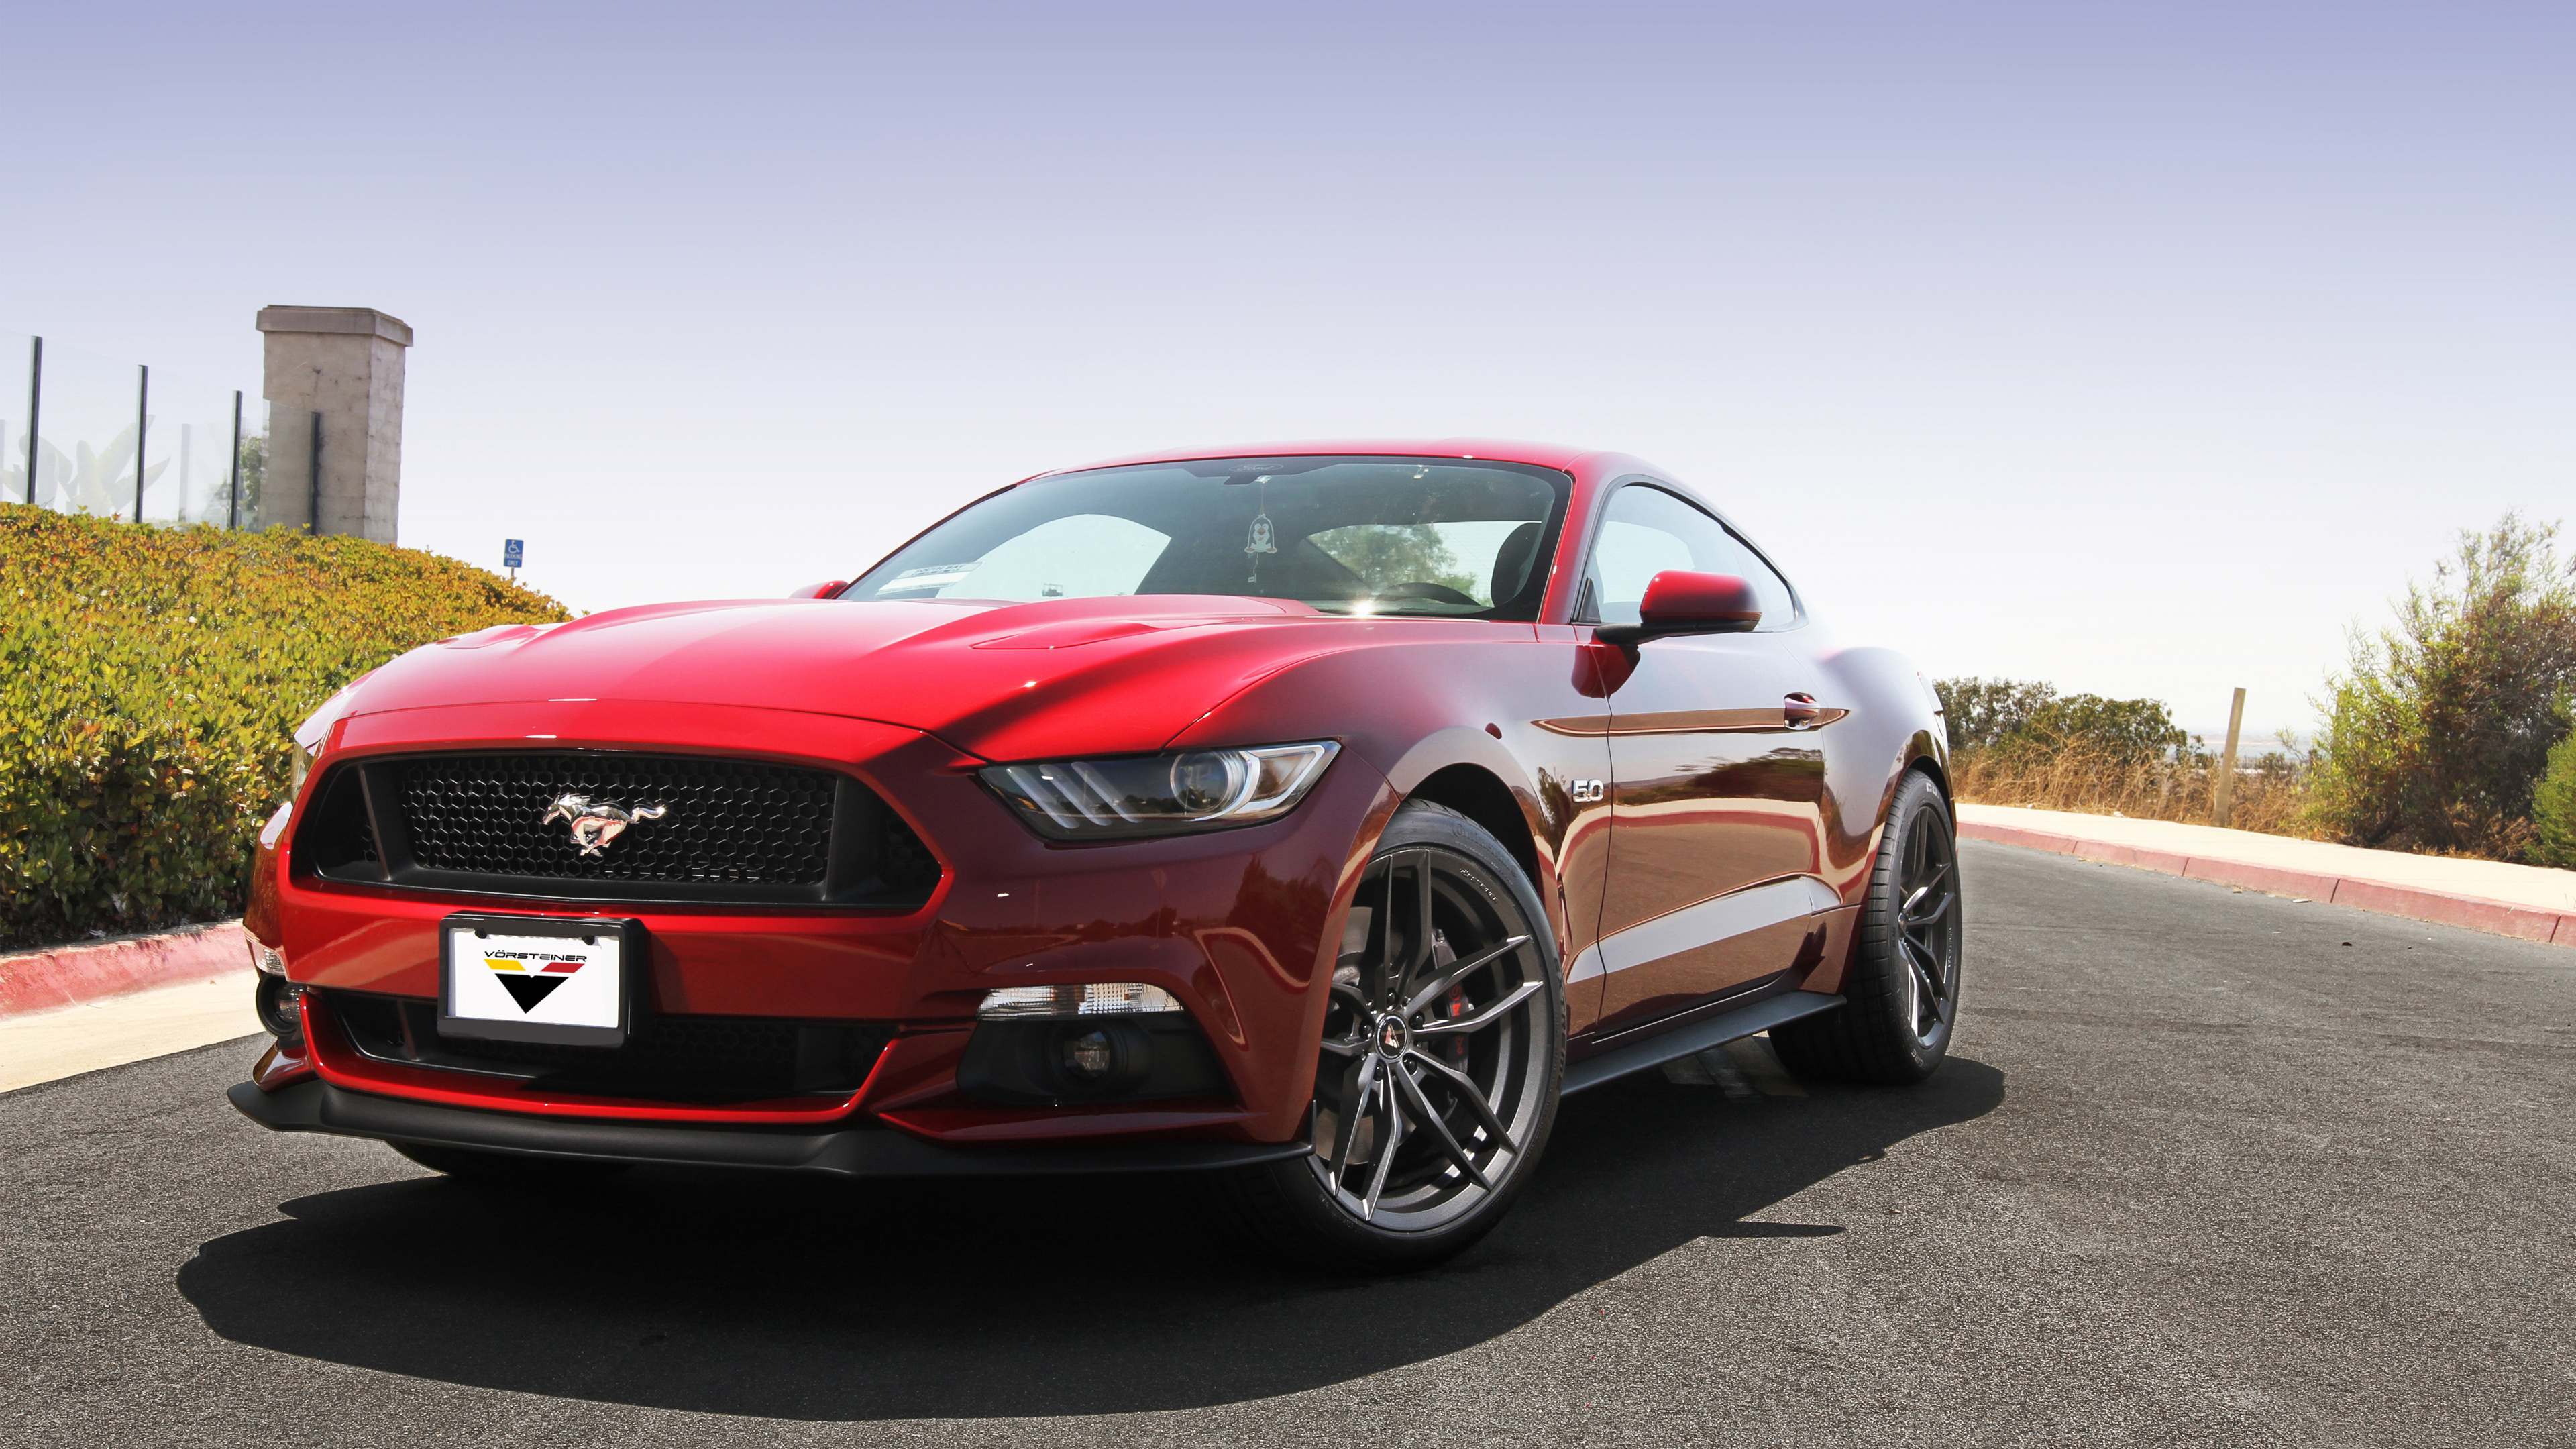 Must see Wallpaper High Quality Mustang - vorsteiner_mustang_s550_v_ff_105_carbon_graphite-HD  Trends_421657.jpg